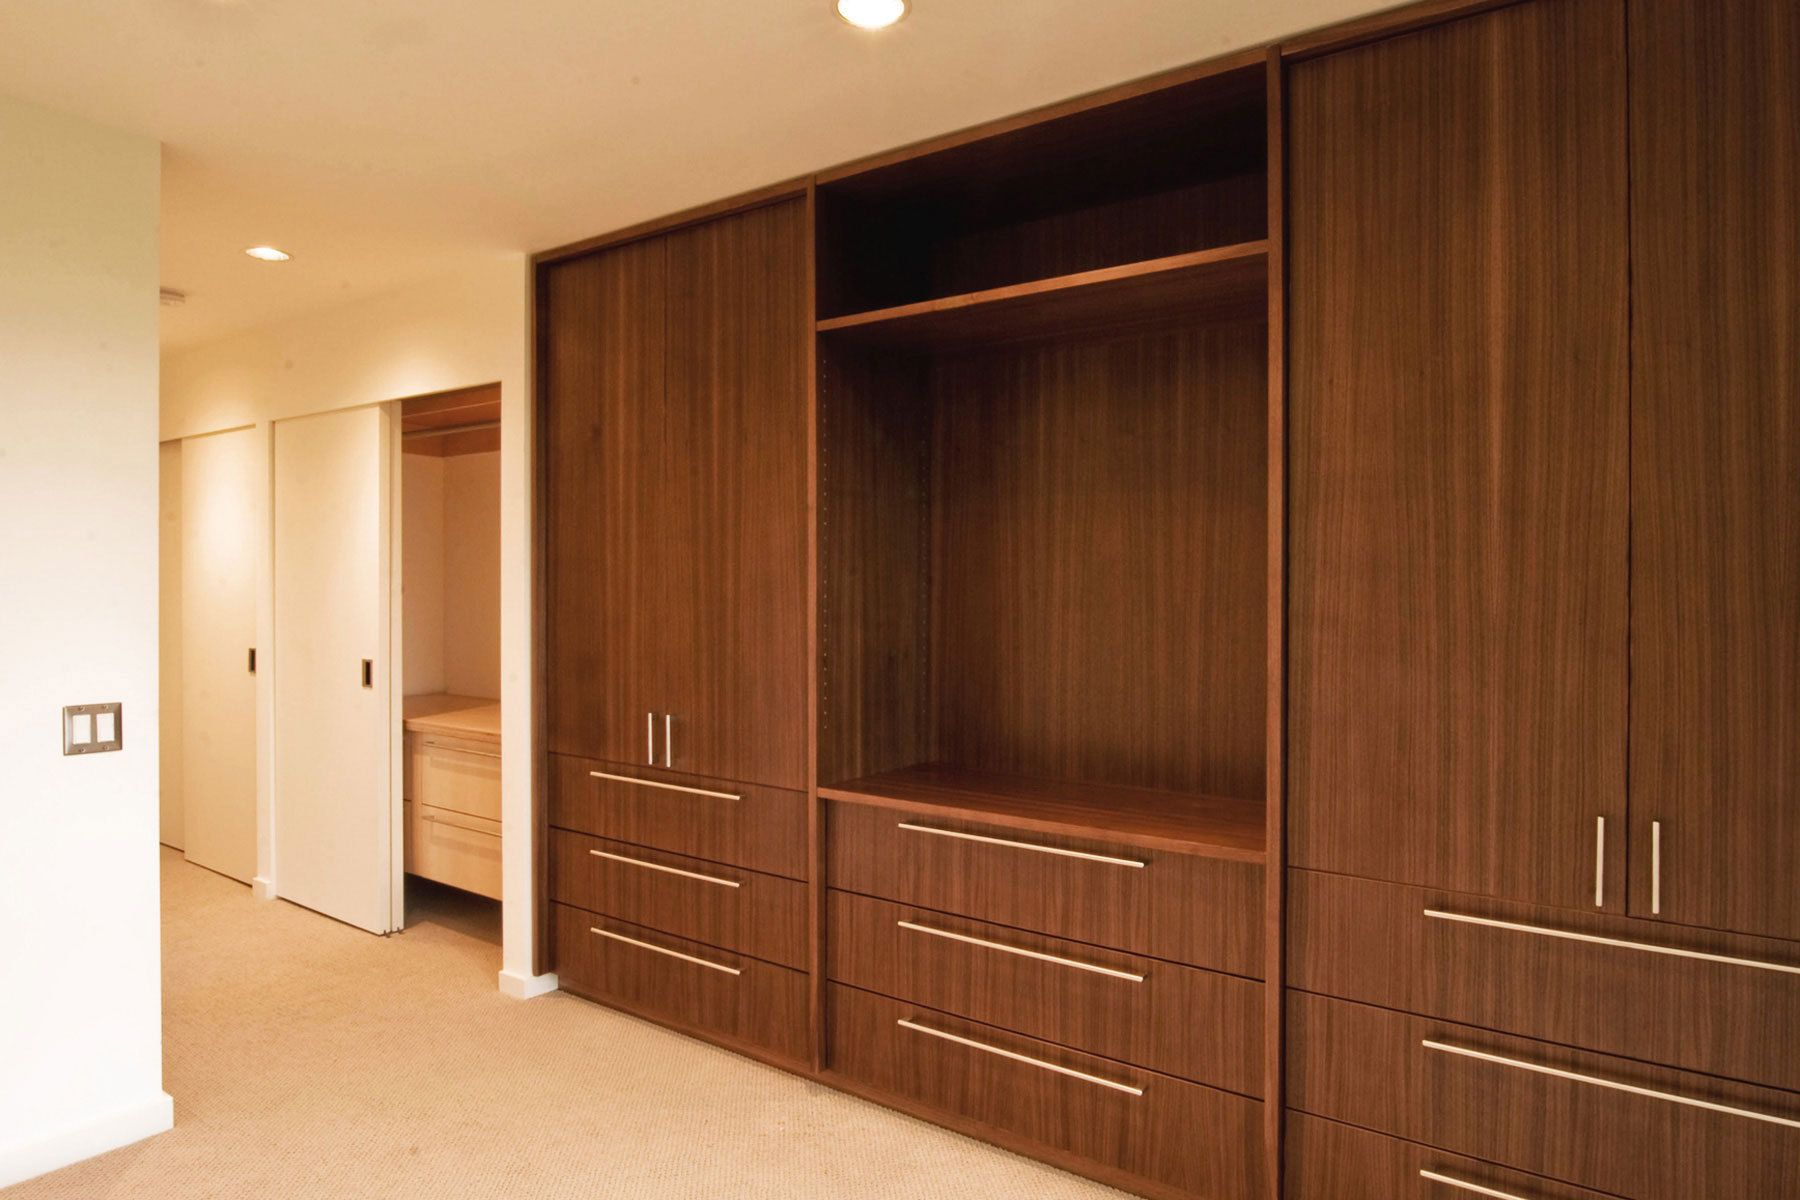 Wall Cupboard Inside Designs Drawers With Doors Above  Similar To The Look Of The Guest